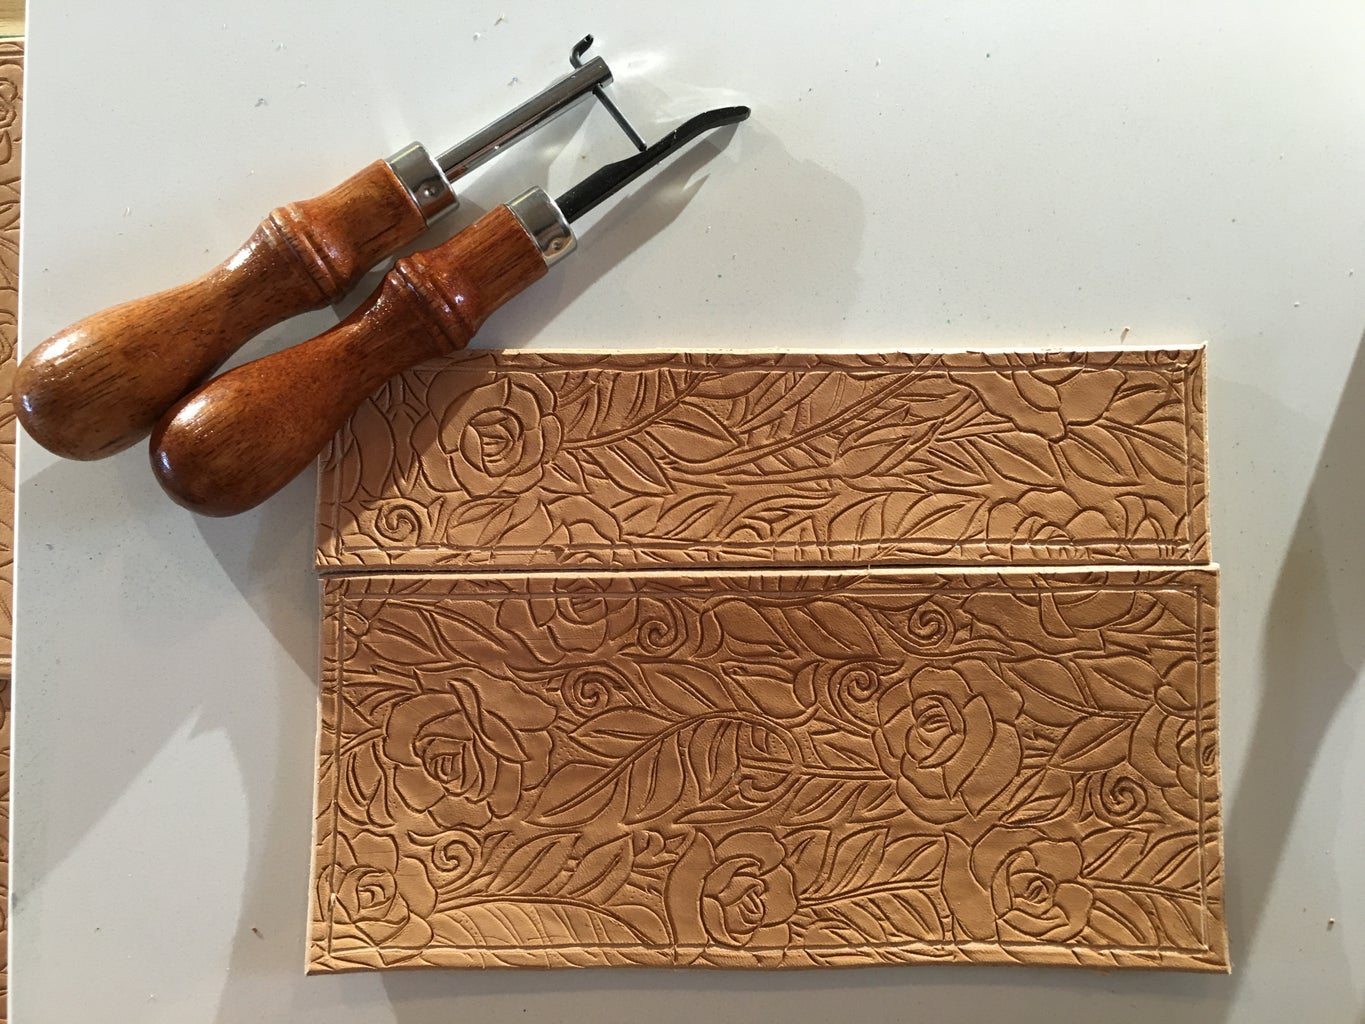 Edges and Stitch Lines